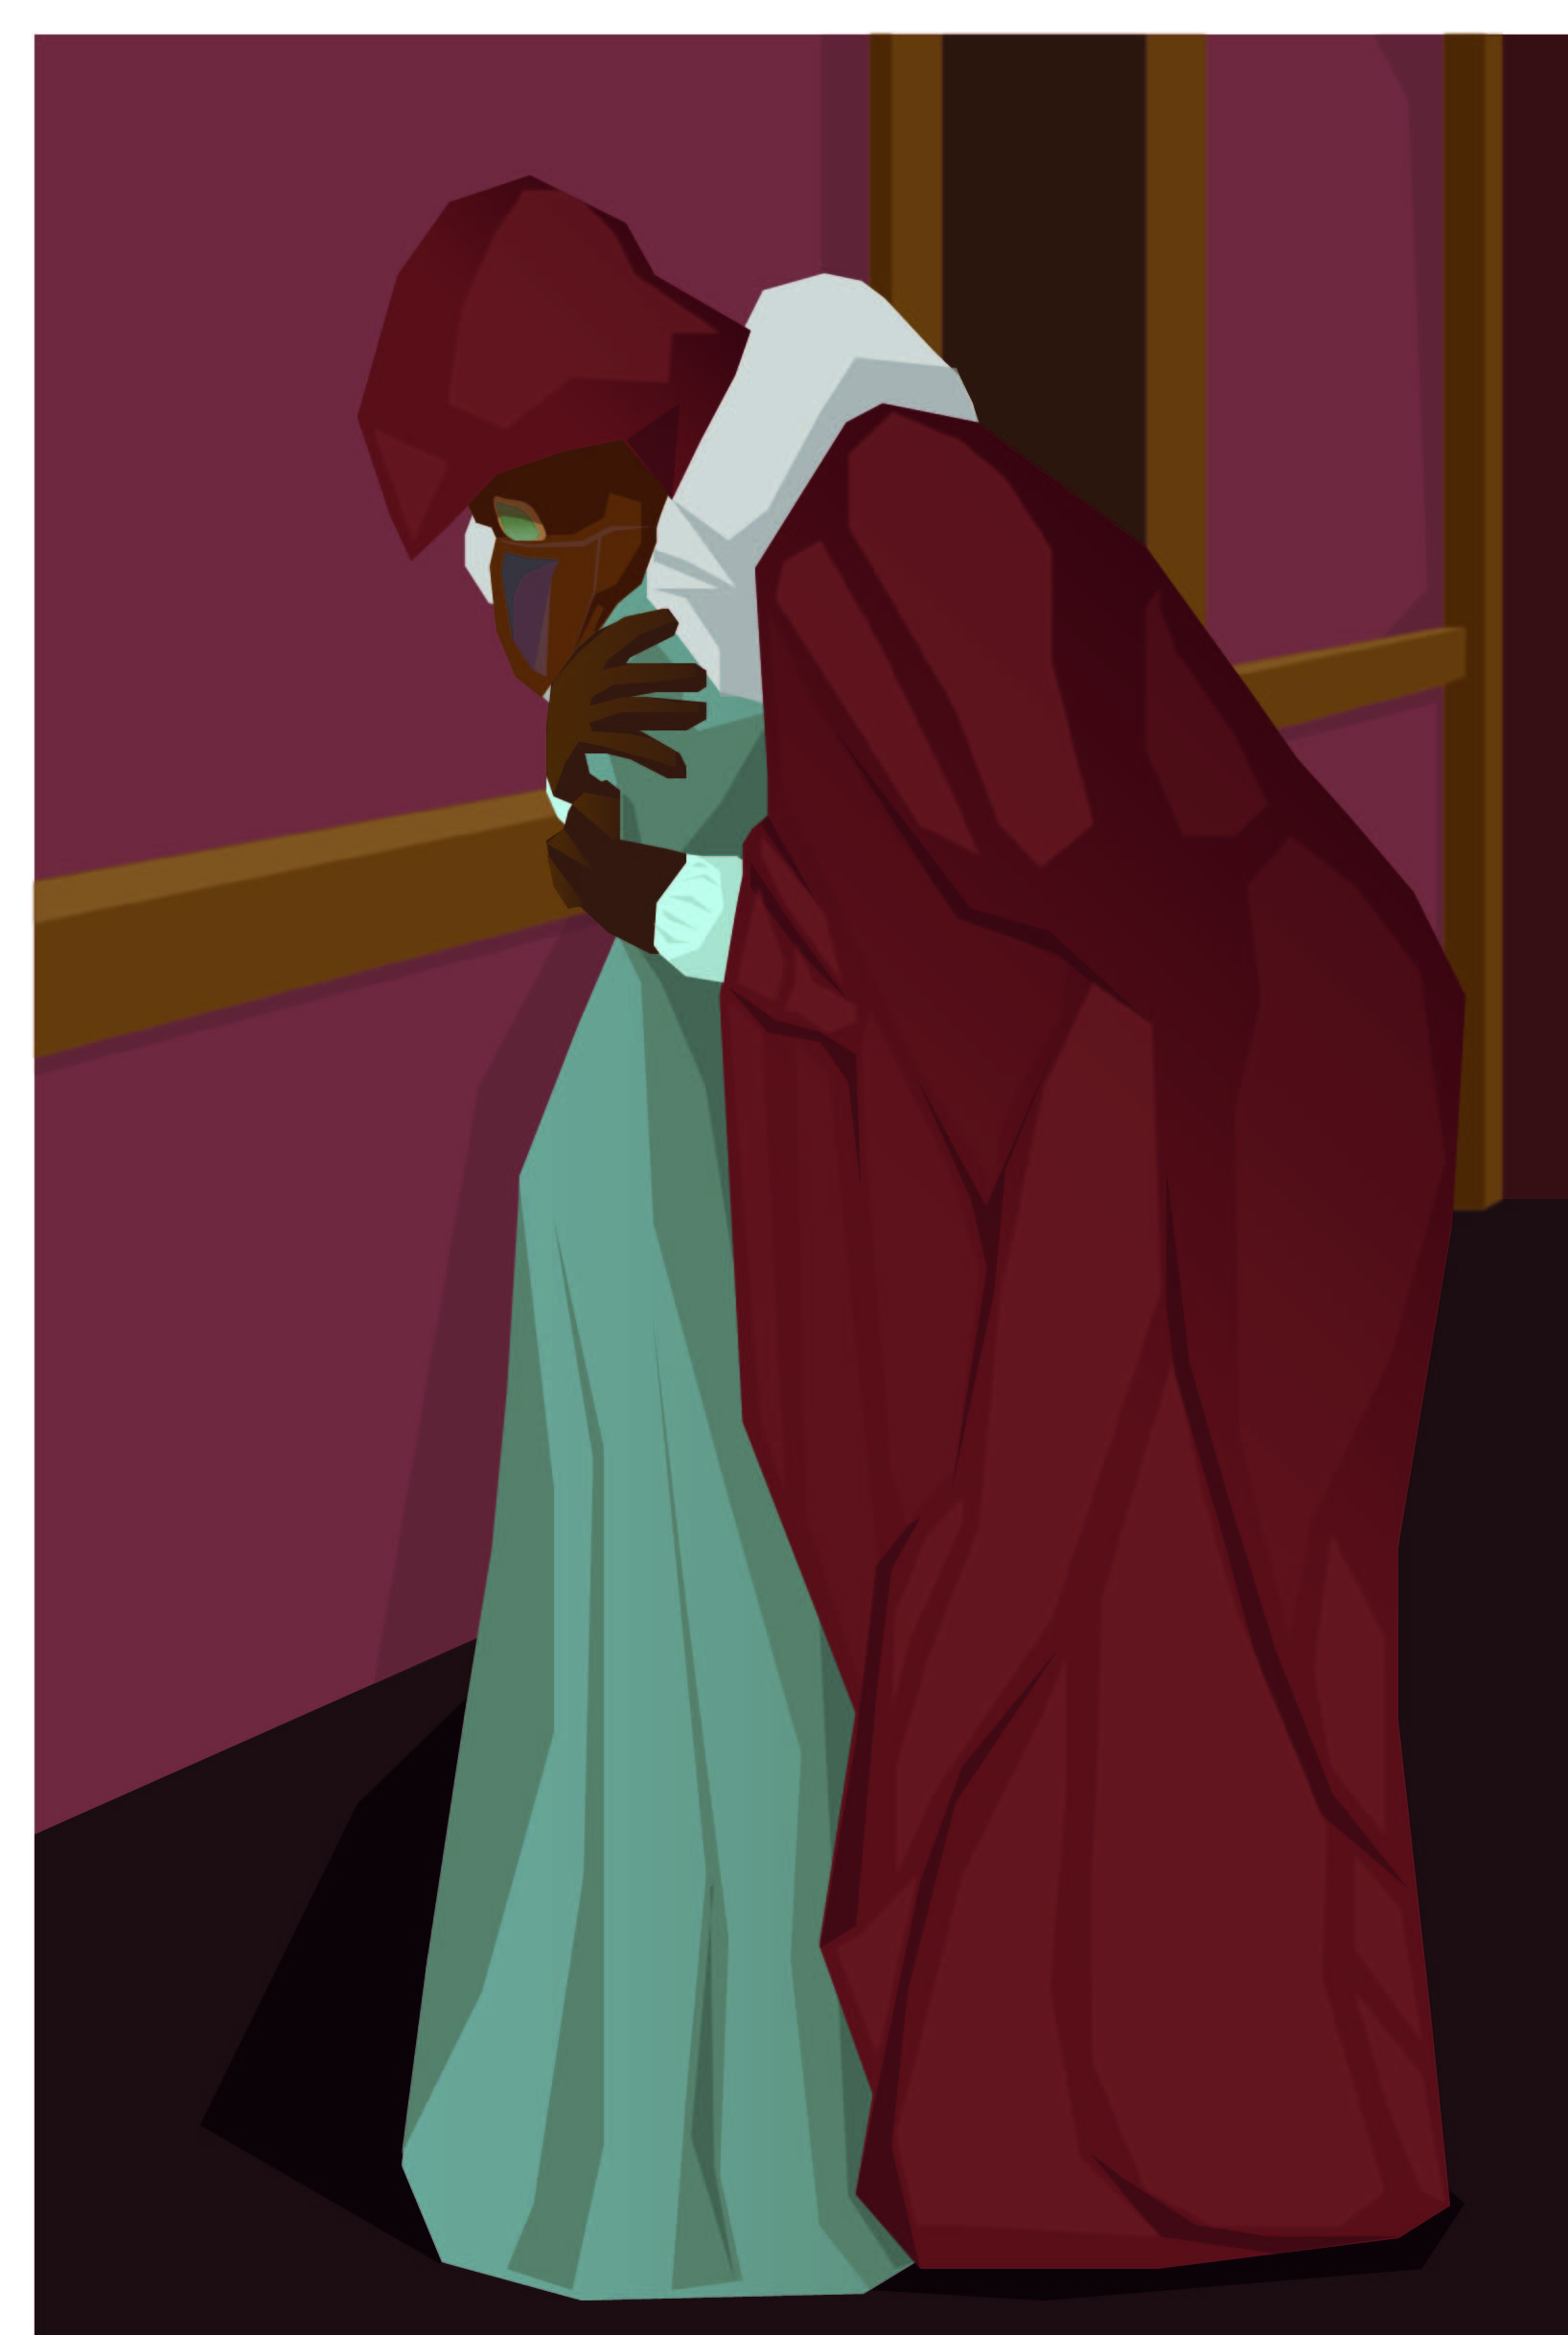 Eoin in seventeenth century plague mask and red leather cloak hugging Widow Magaidh in peasant dress.